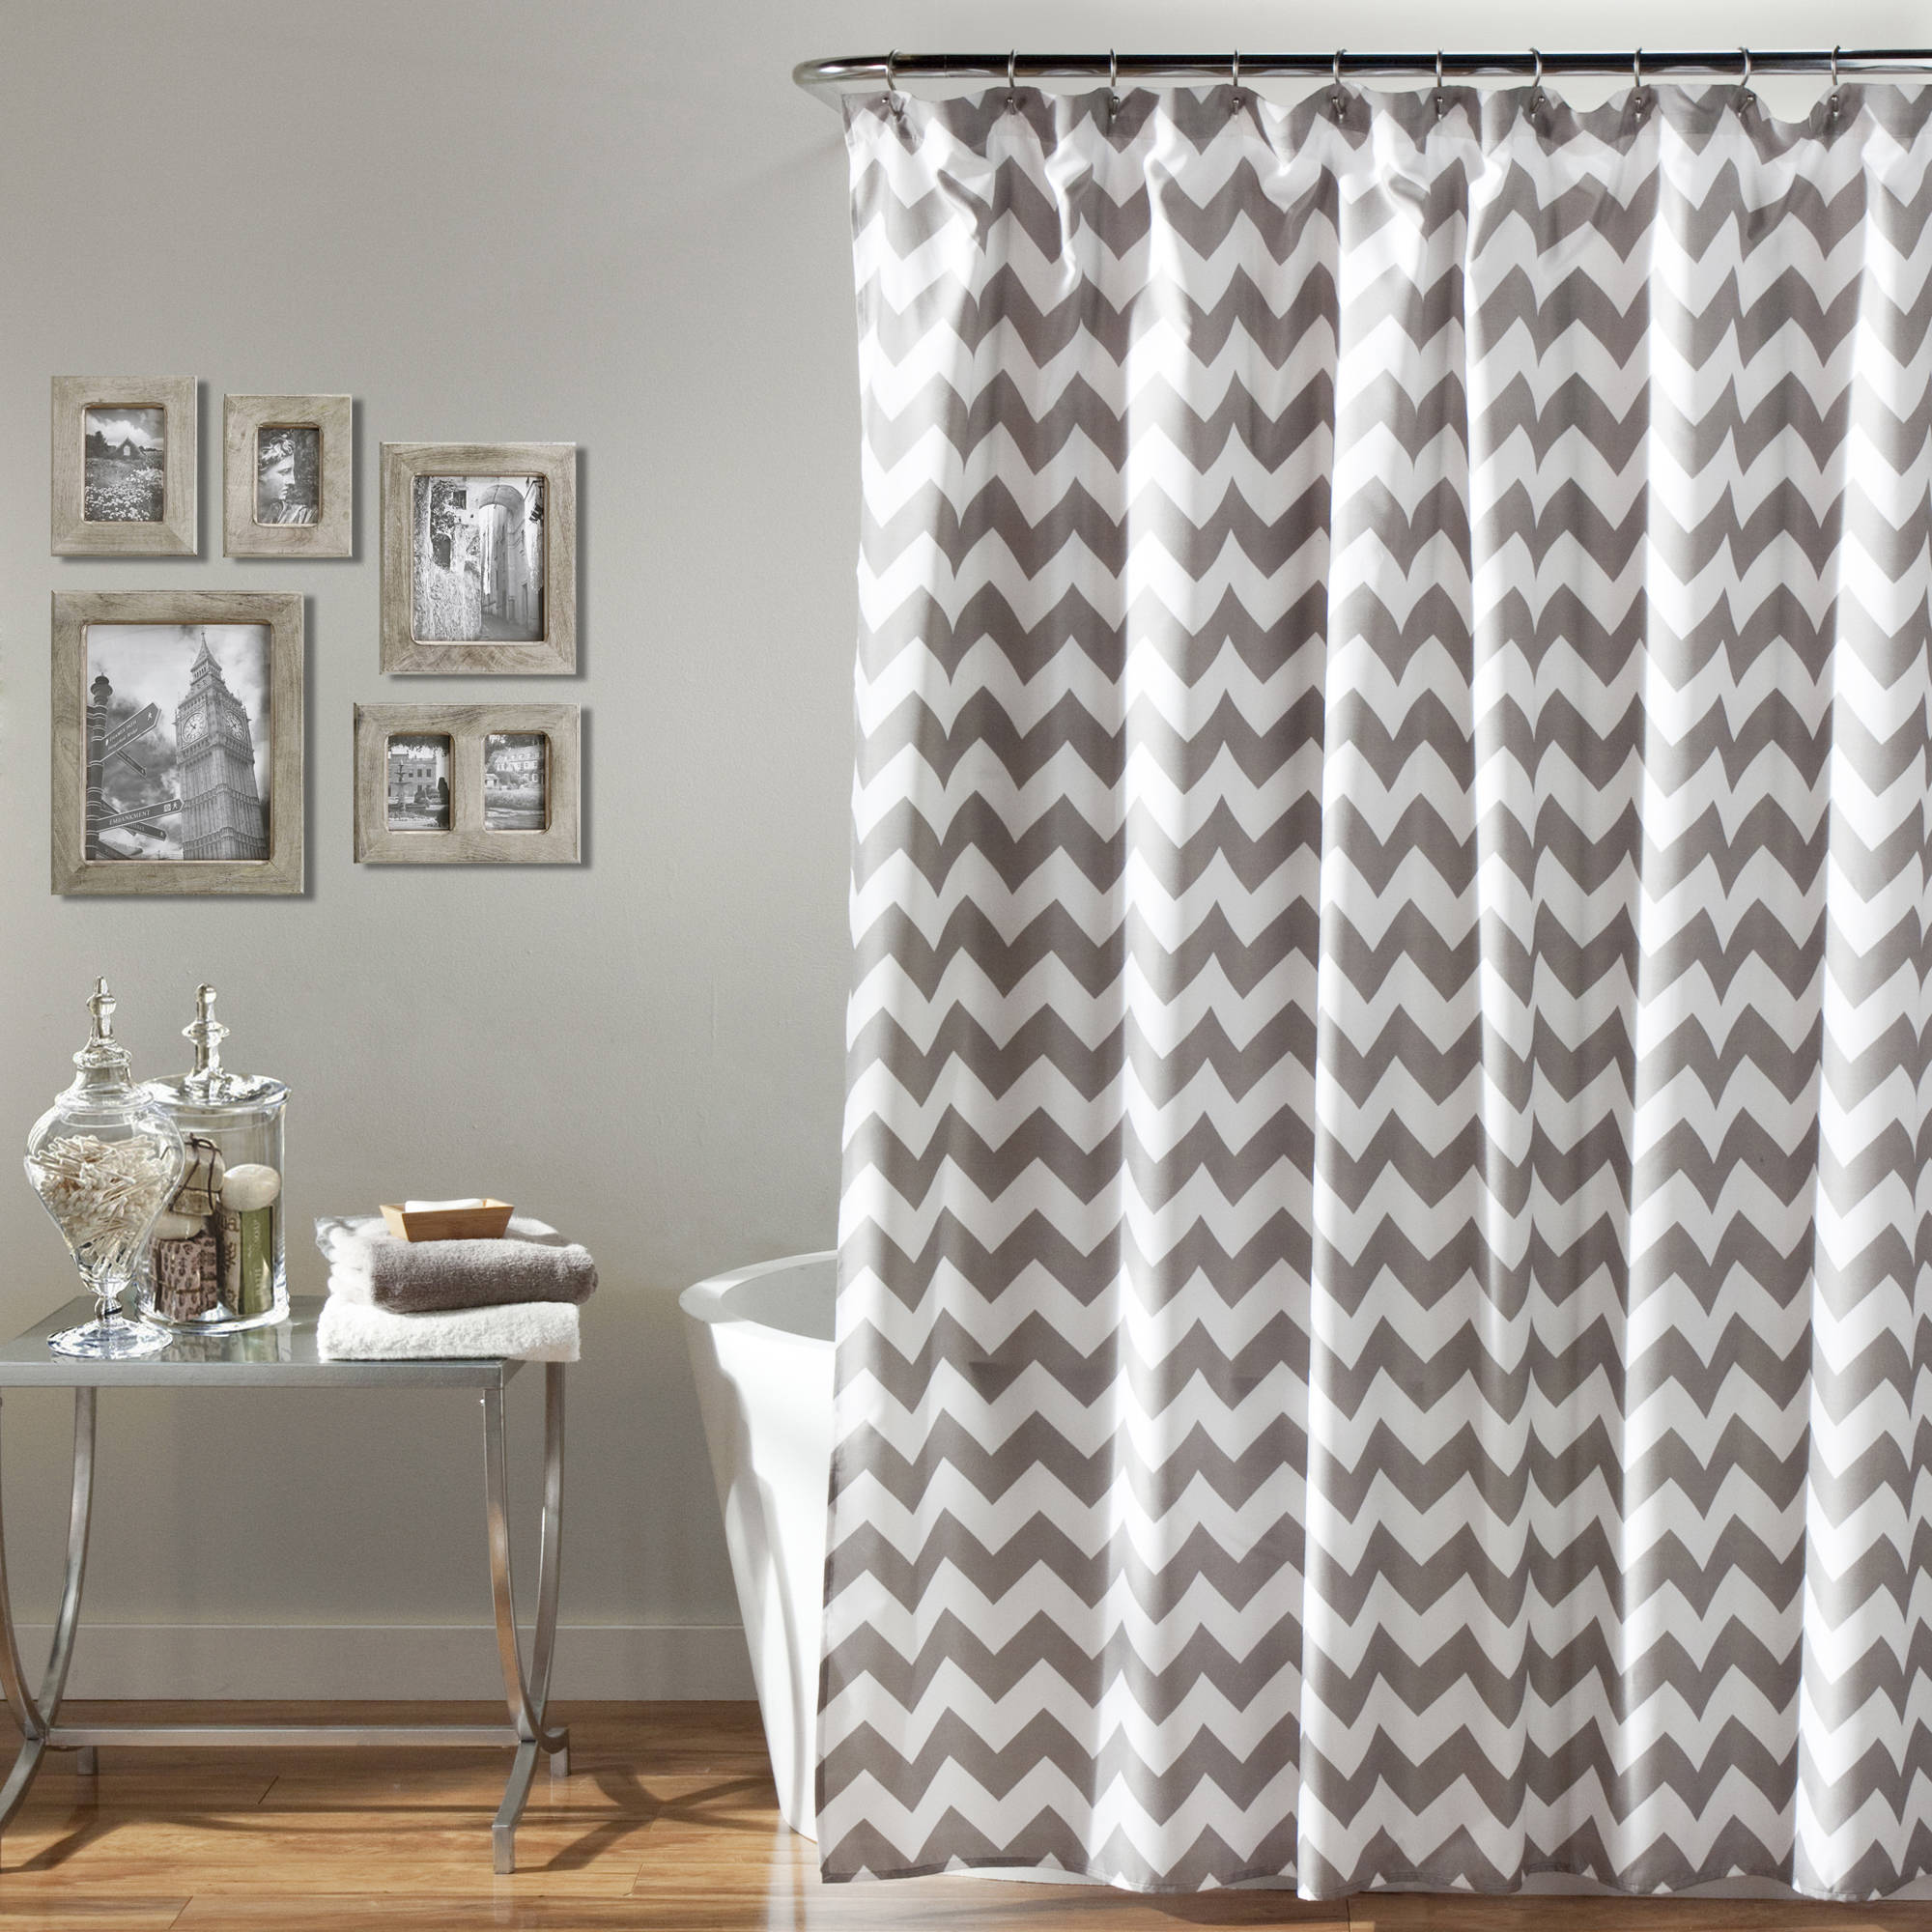 Mainstays Flux Chevron Fabric Shower Curtain